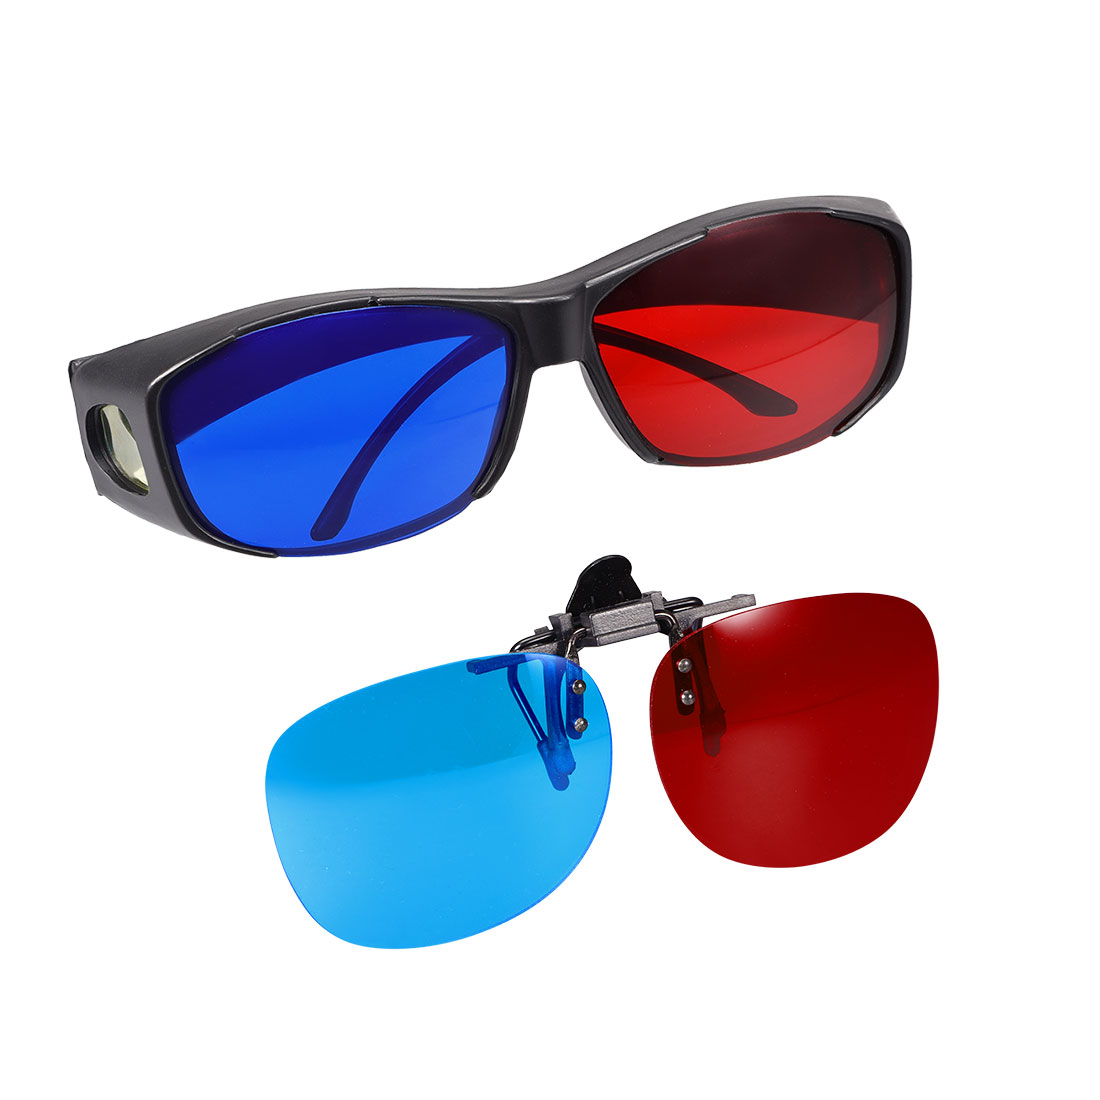 Red-Blue 3D Glasses and 3D Clip-on Glasses for Movies Anaglyph Photos 2 set